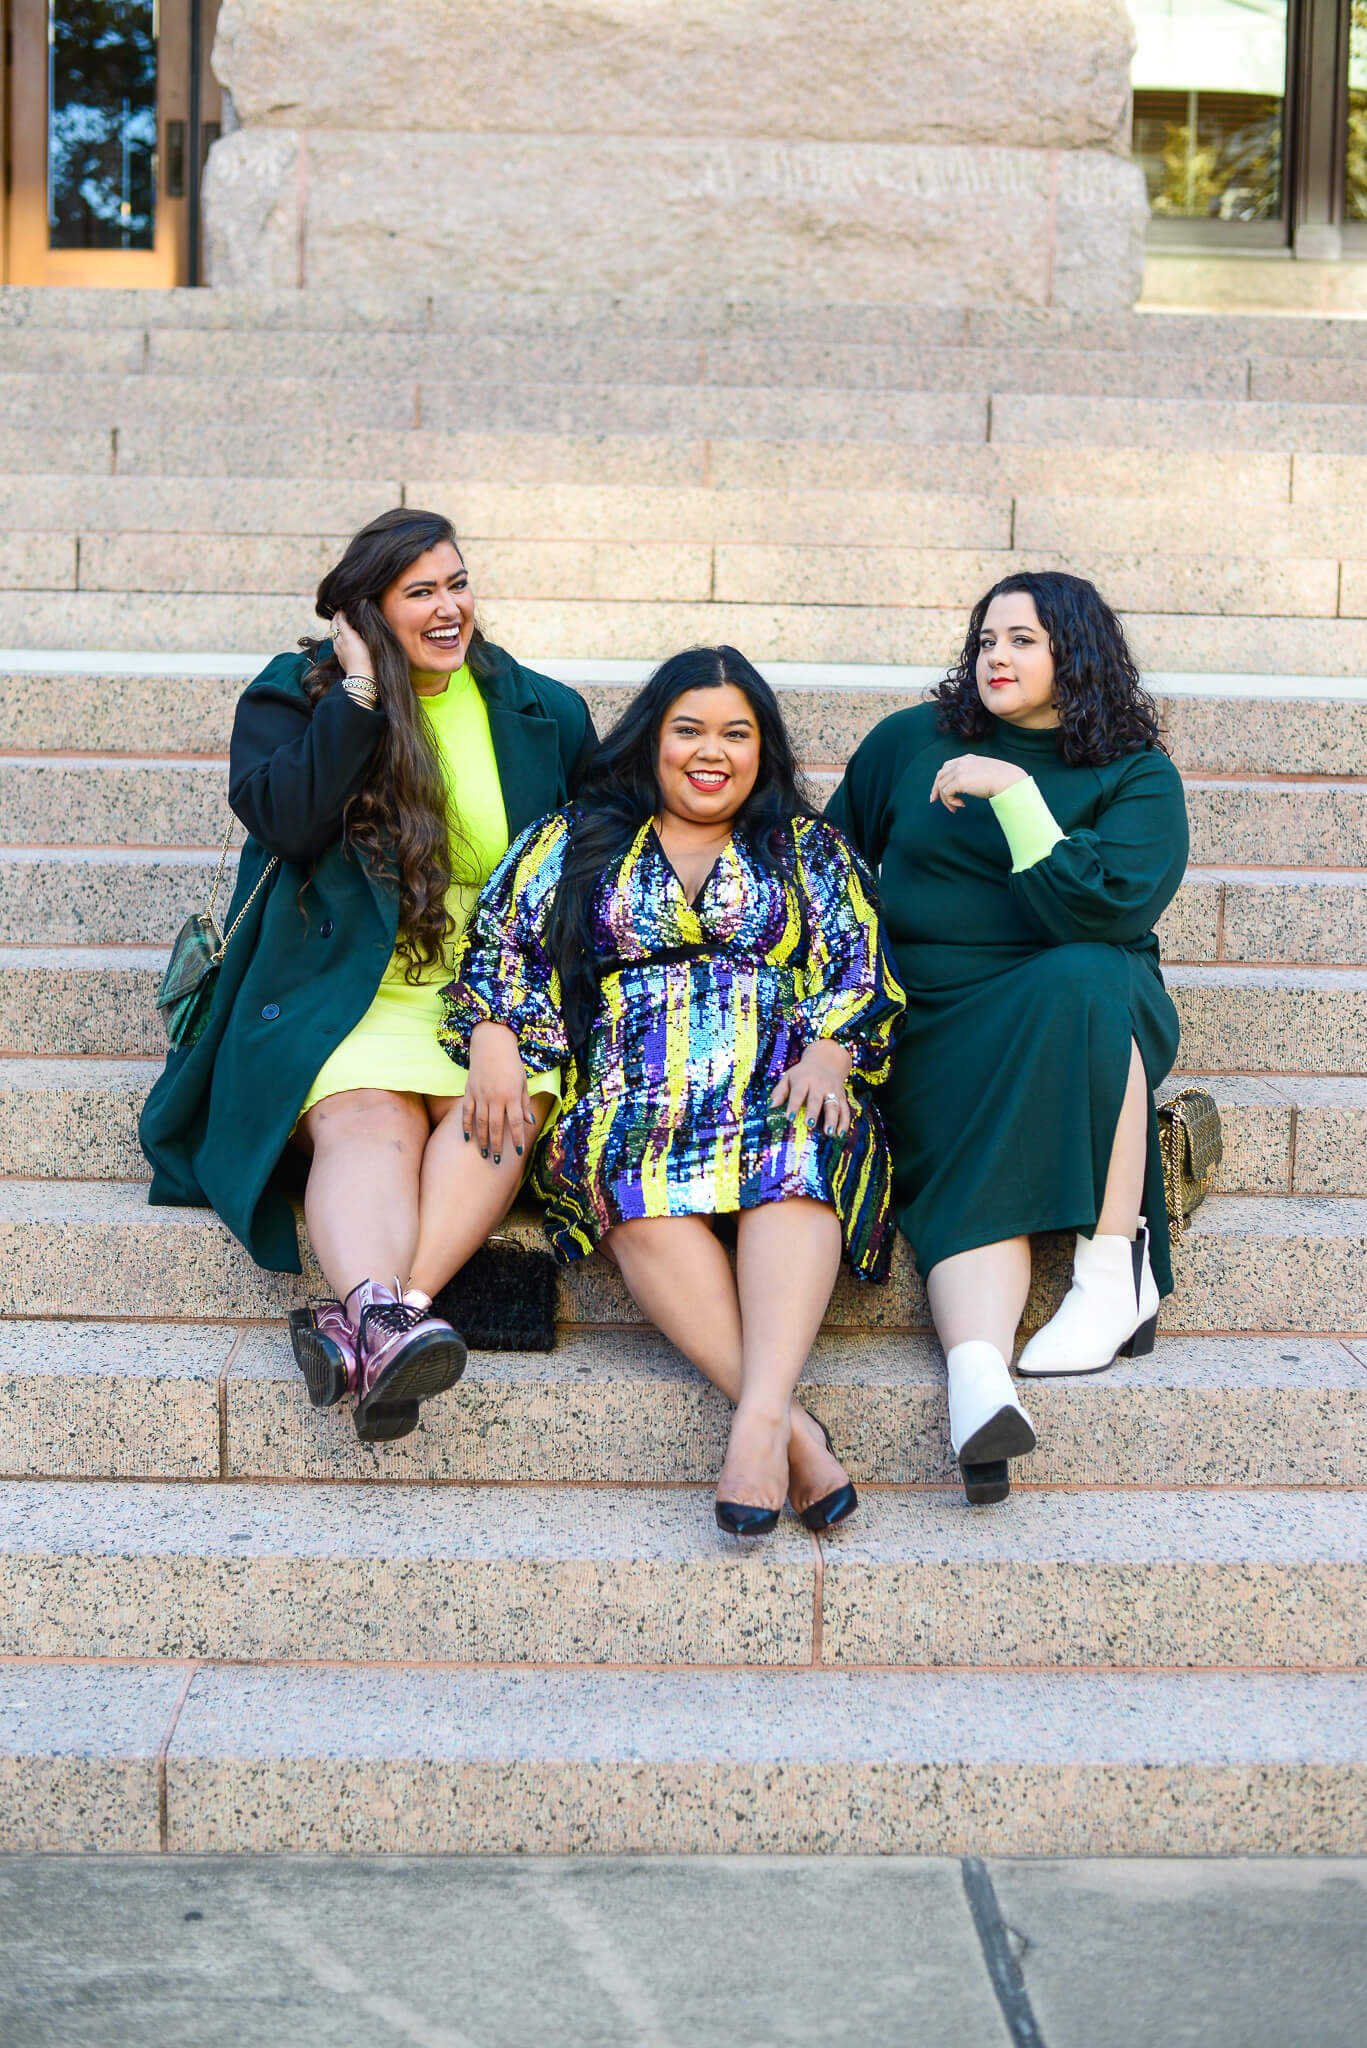 Wearing an emerald green plus size sweatshirt dress with my gal pals